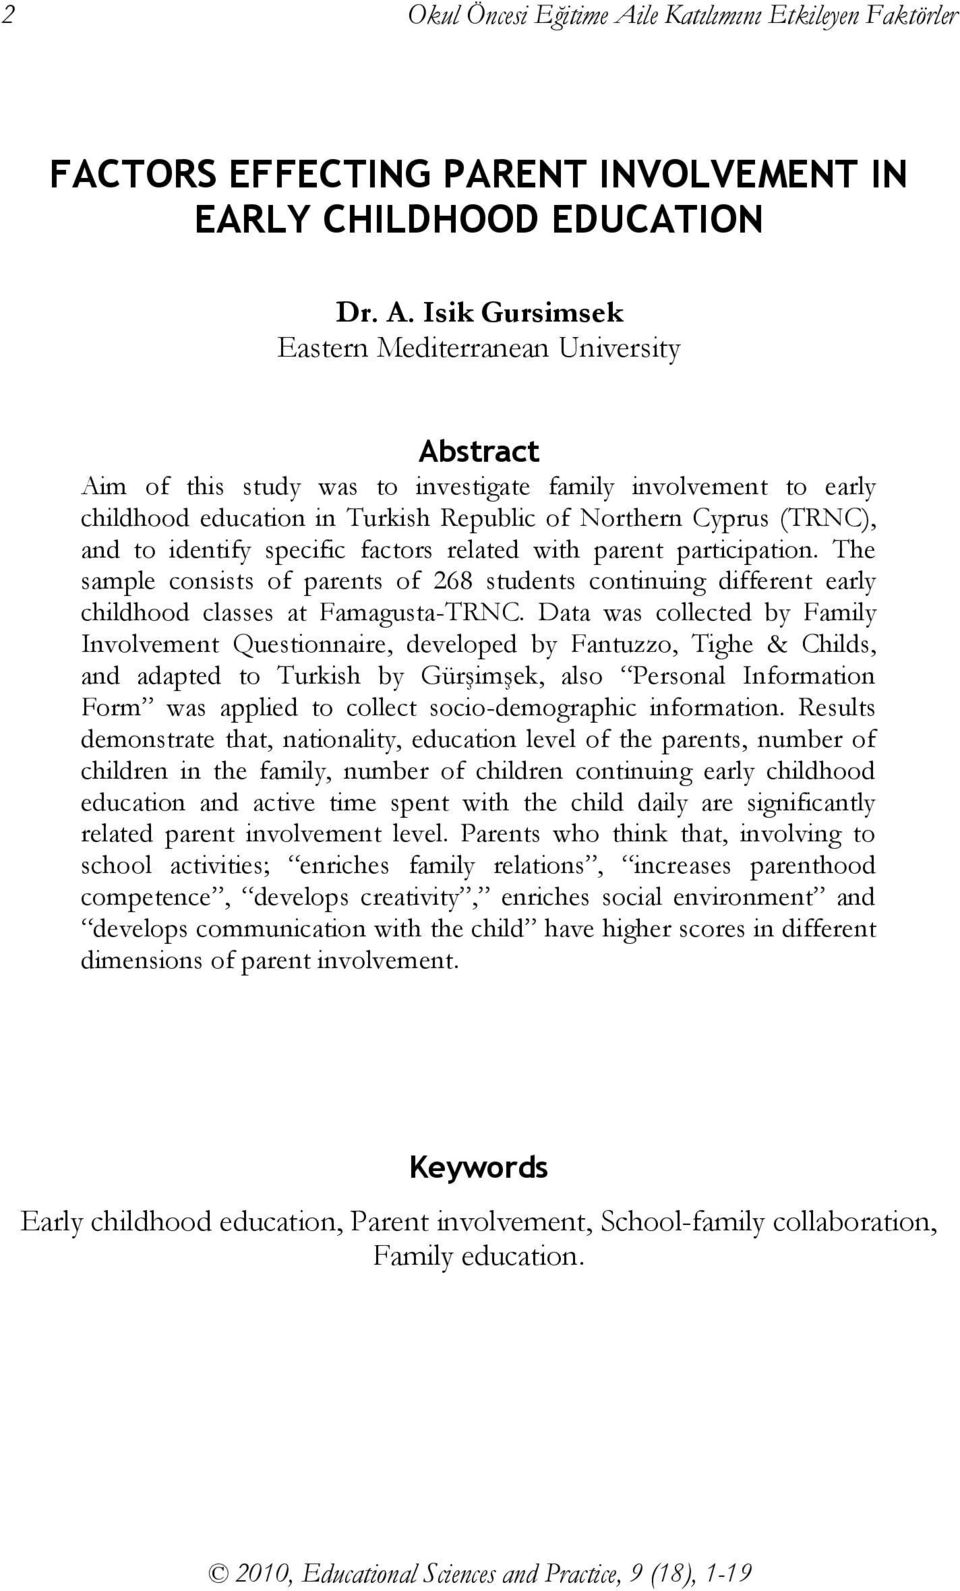 Isik Gursimsek Eastern Mediterranean University Abstract Aim of this study was to investigate family involvement to early childhood education in Turkish Republic of Northern Cyprus (TRNC), and to